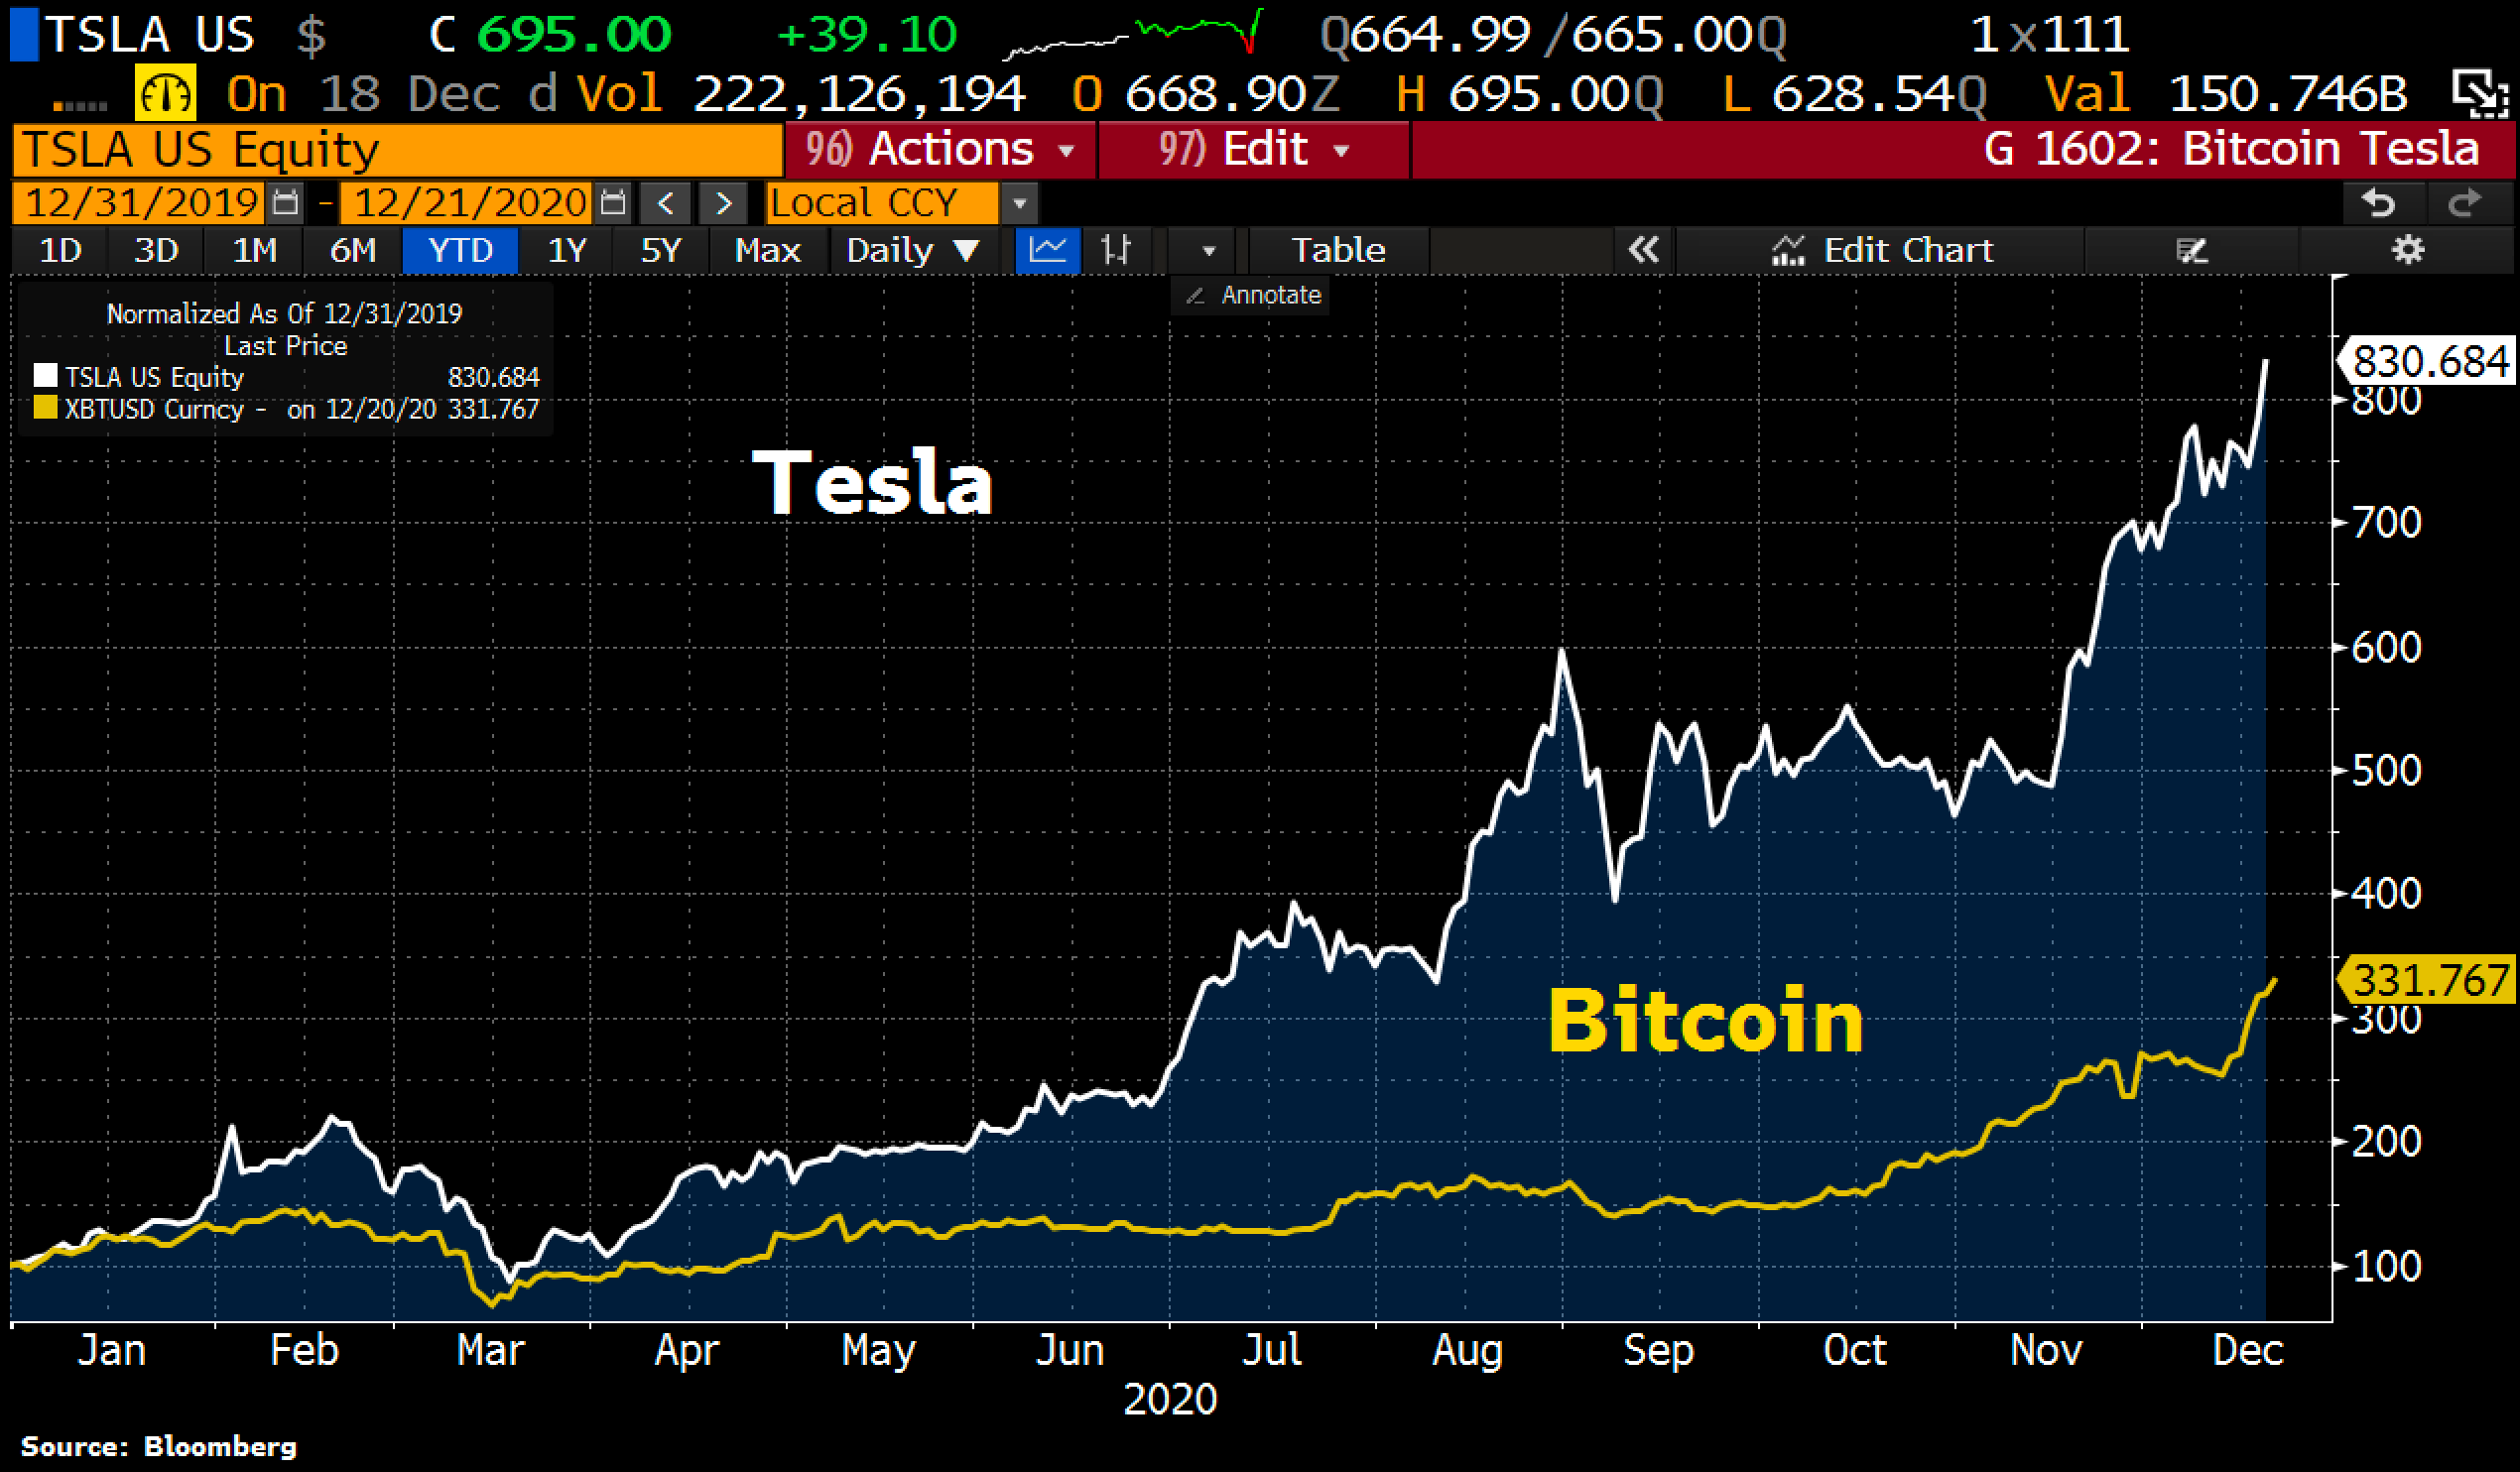 Bitcoin and Tesla are up to the roof